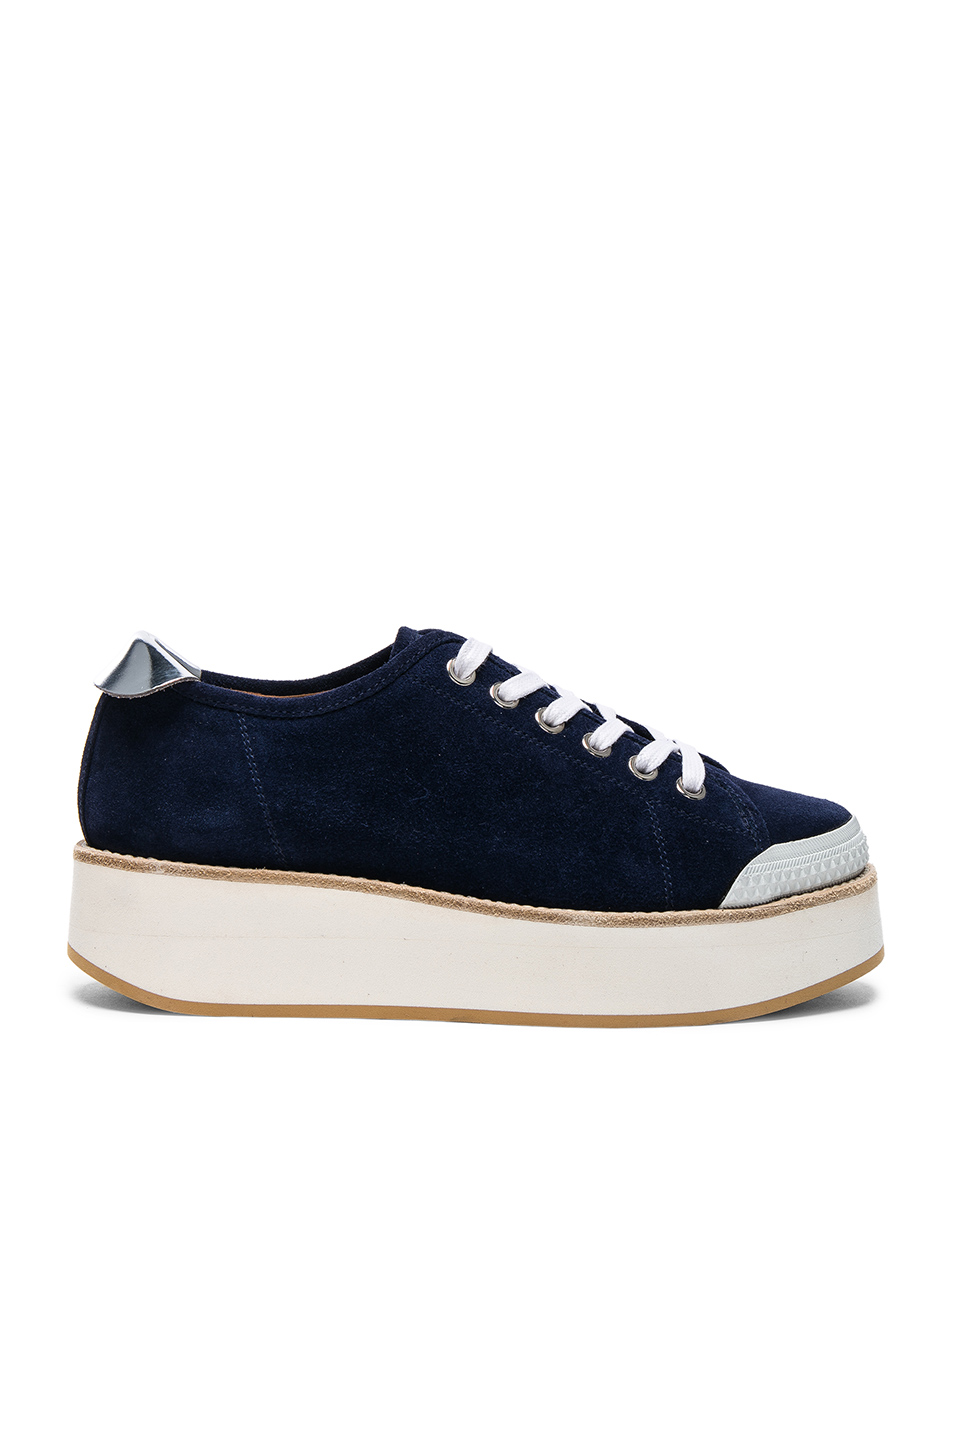 Flamingos Suede Tatum Sneakers in Blue